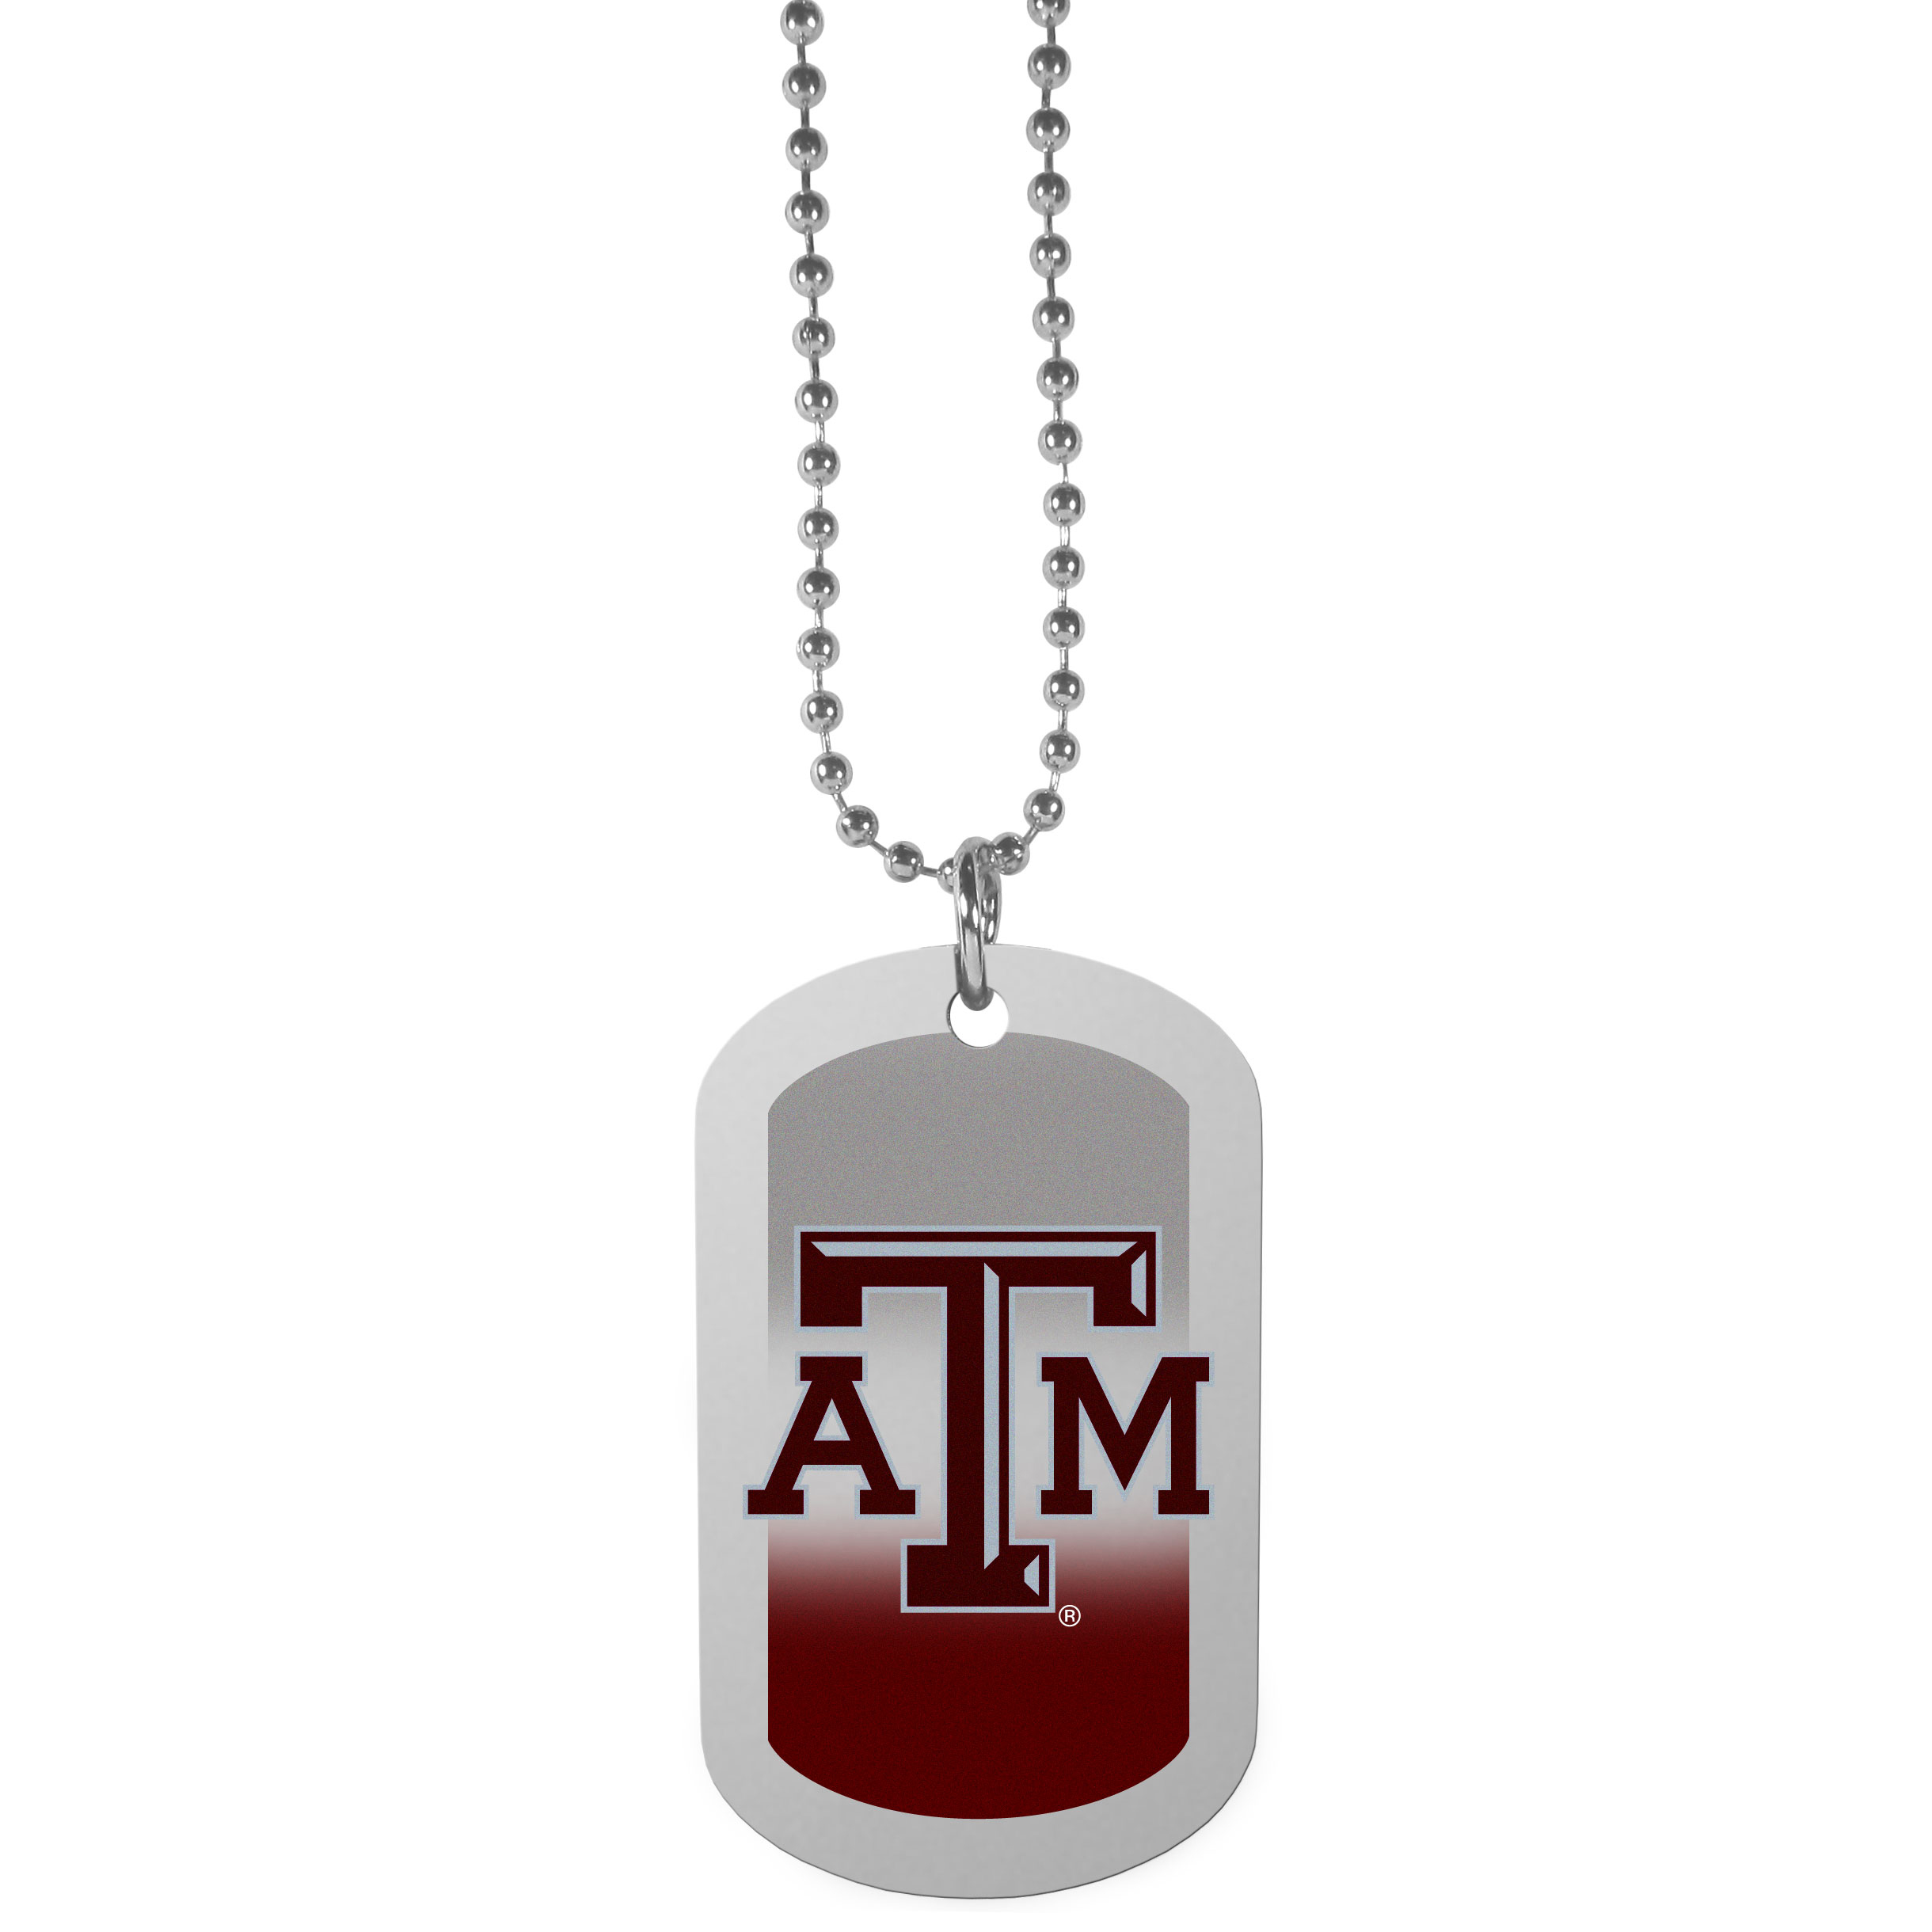 Texas A and M Aggies Team Tag Necklace - Dog tag necklaces are a fashion statement that is here to stay. The sporty version of the classic tag features a gradient print in team colors featuring a full color team logo over a high polish tag to create a bold and sporty look. The tag comes on a 26 inch ball chain with a ball and joint clasp. Any Texas A & M Aggies would be proud to wear this attractive fashion accessory.